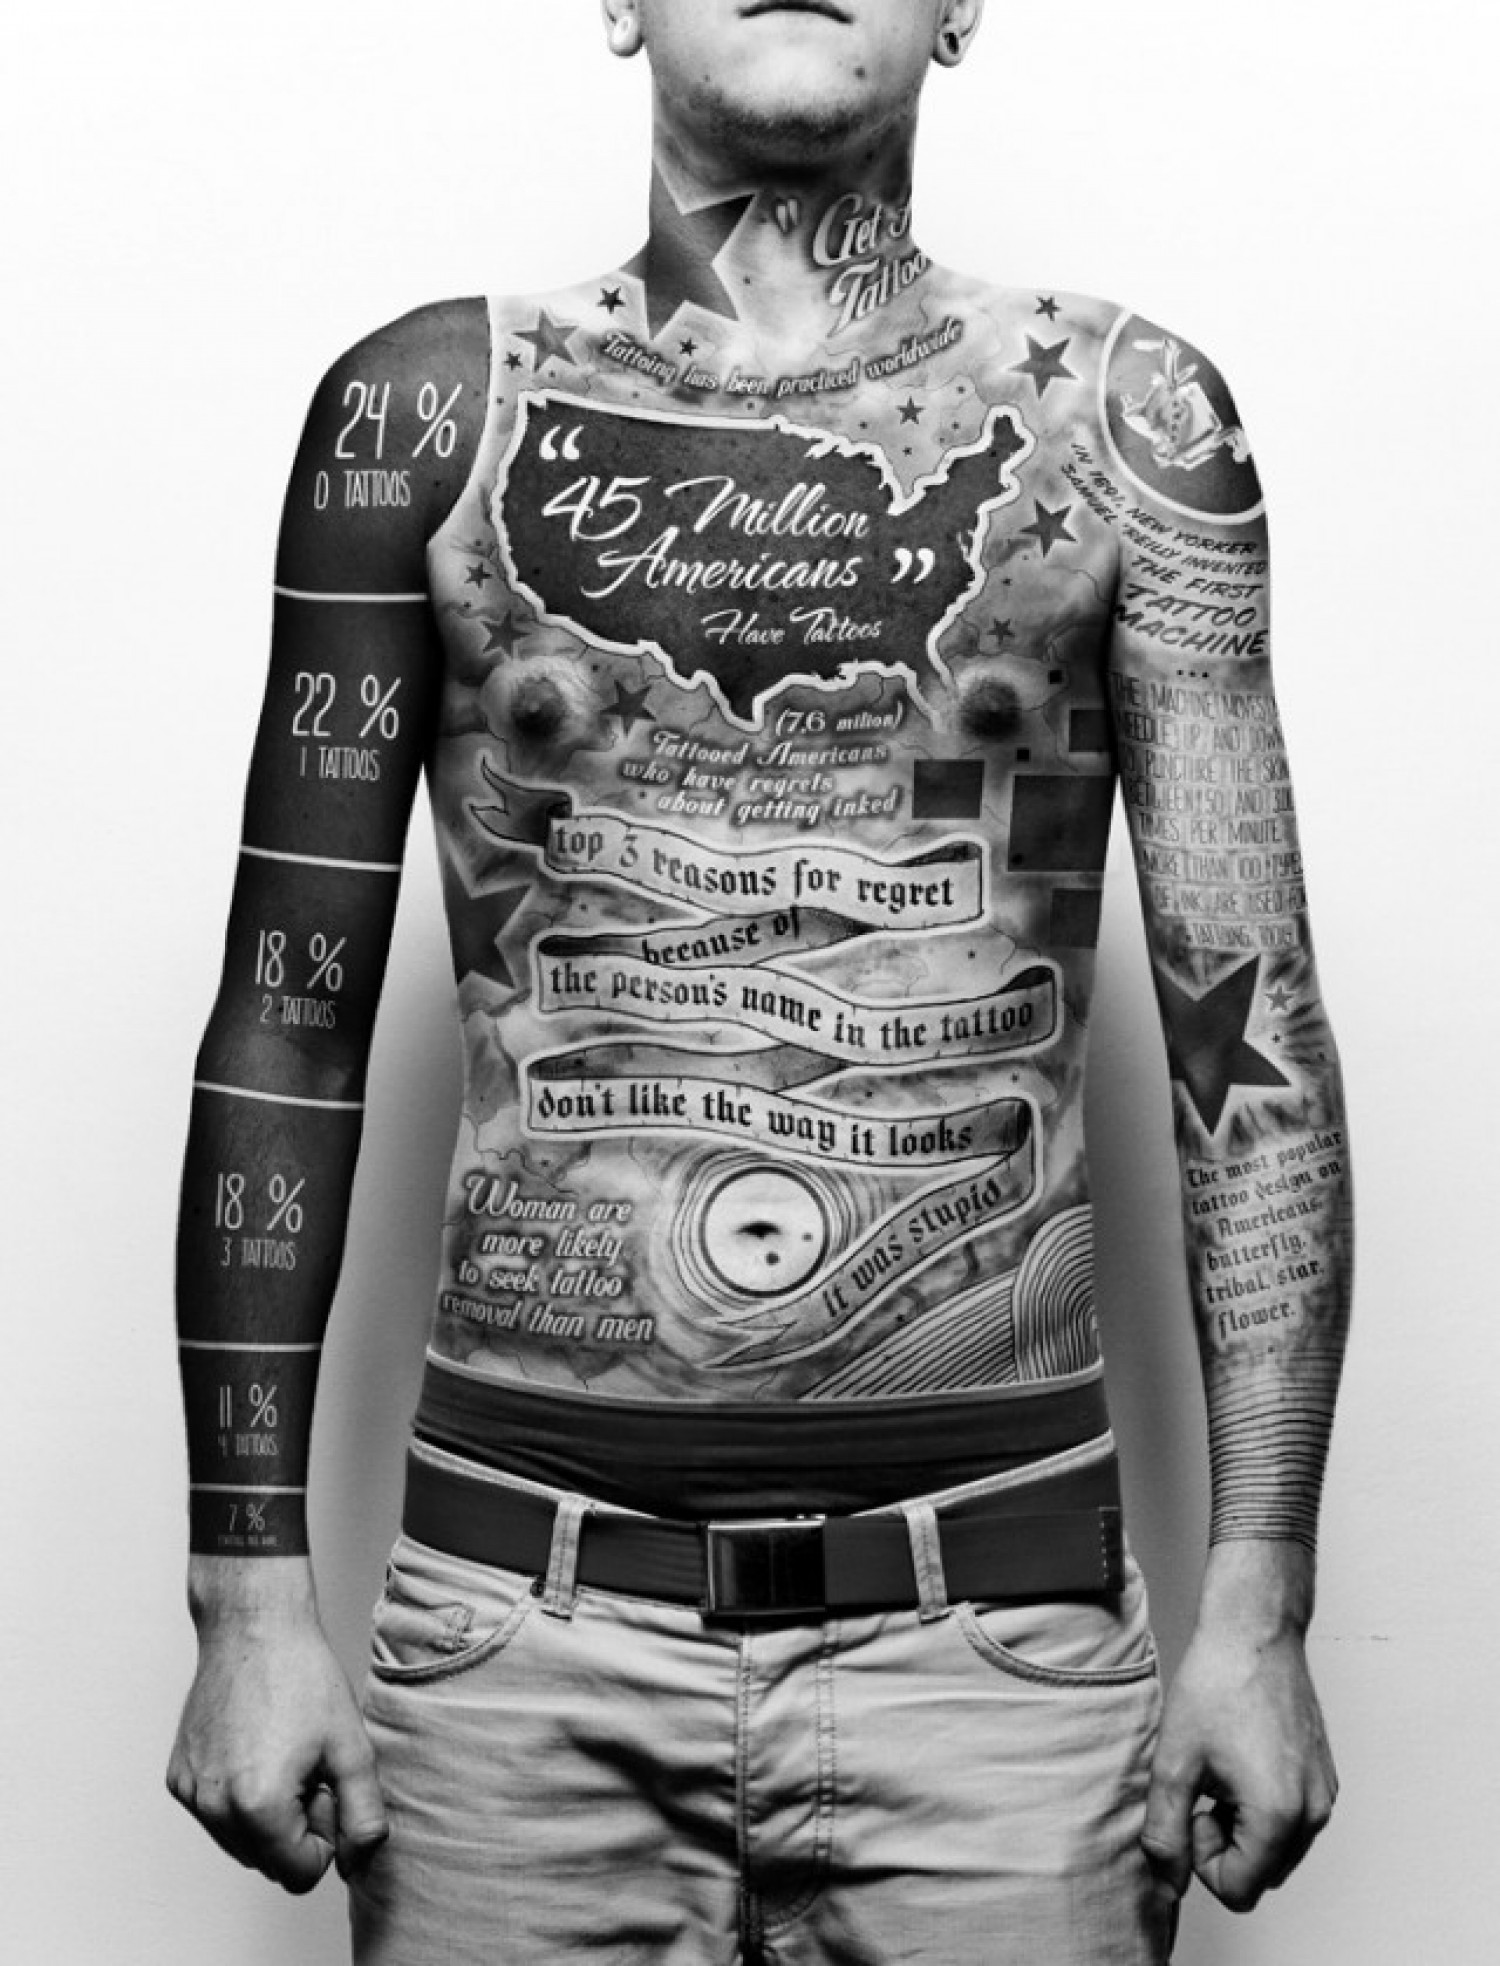 Get a Tattoo Infographic